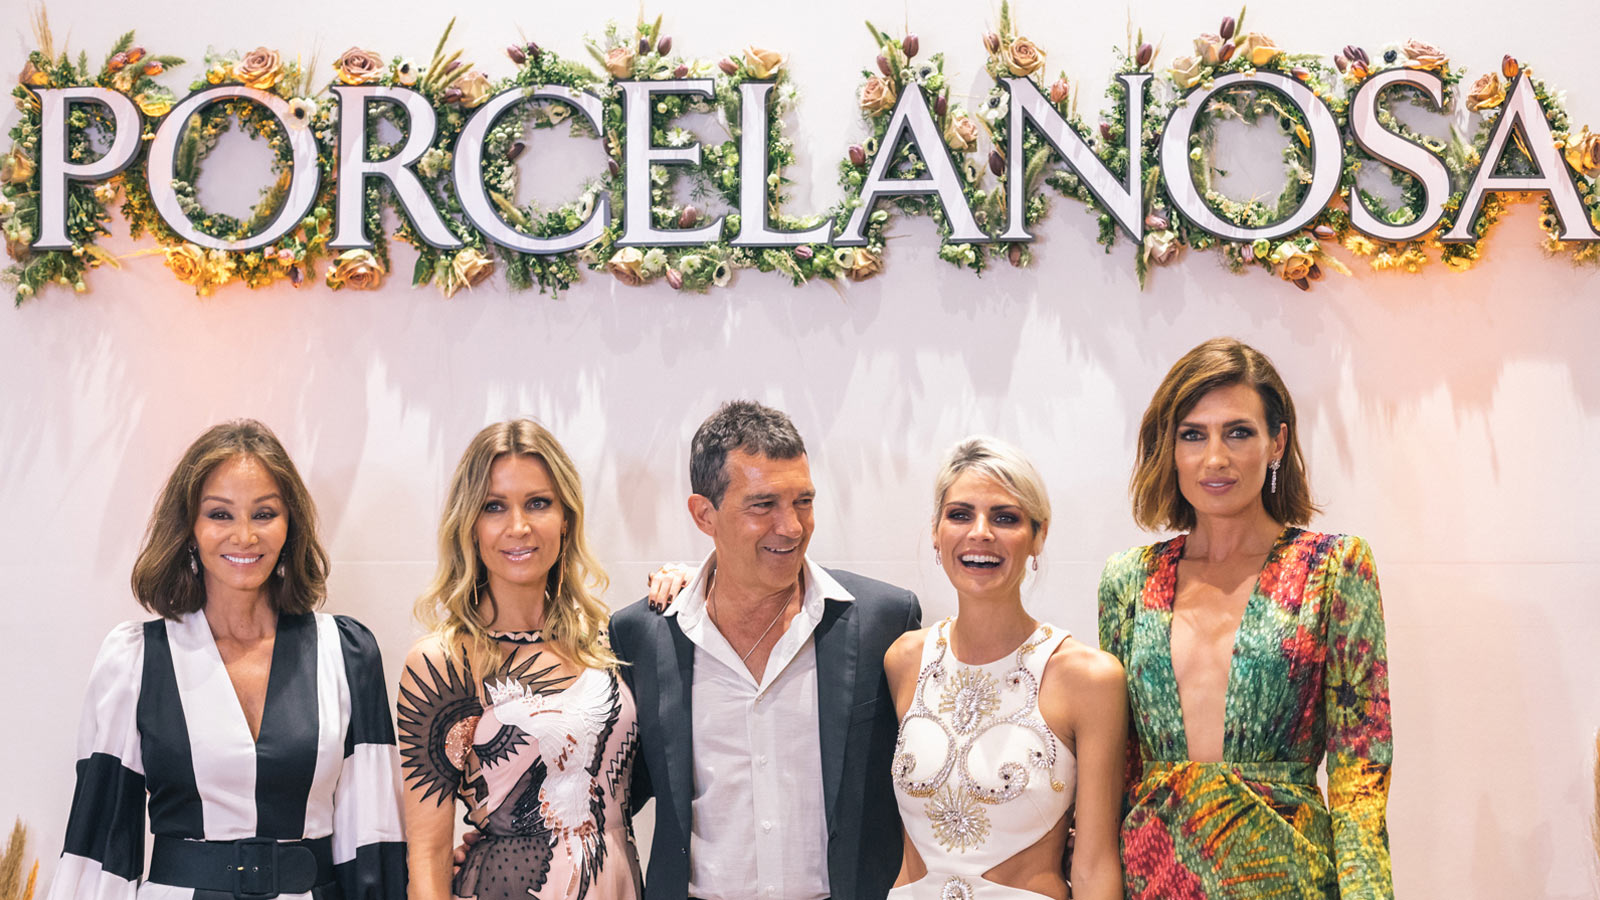 PORCELANOSA Grupo opens its newly renovated showroom in Miami